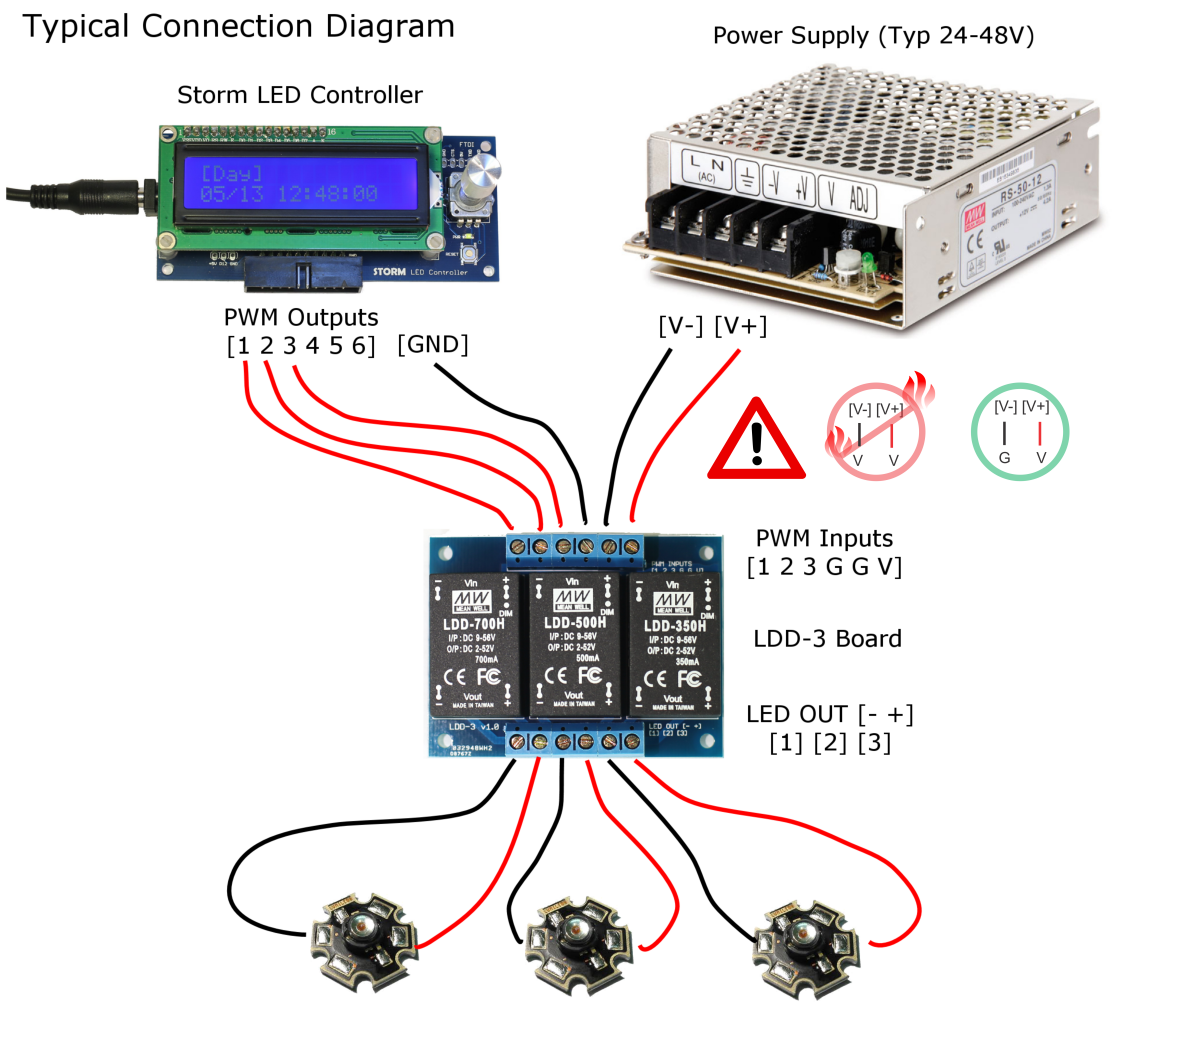 What You Need To Know About Leds further Auto shutdown enus together with Showthread further Running Leds From An Ac Supply together with Constant Voltage Or Constant Current Led Driver. on led power supply circuit